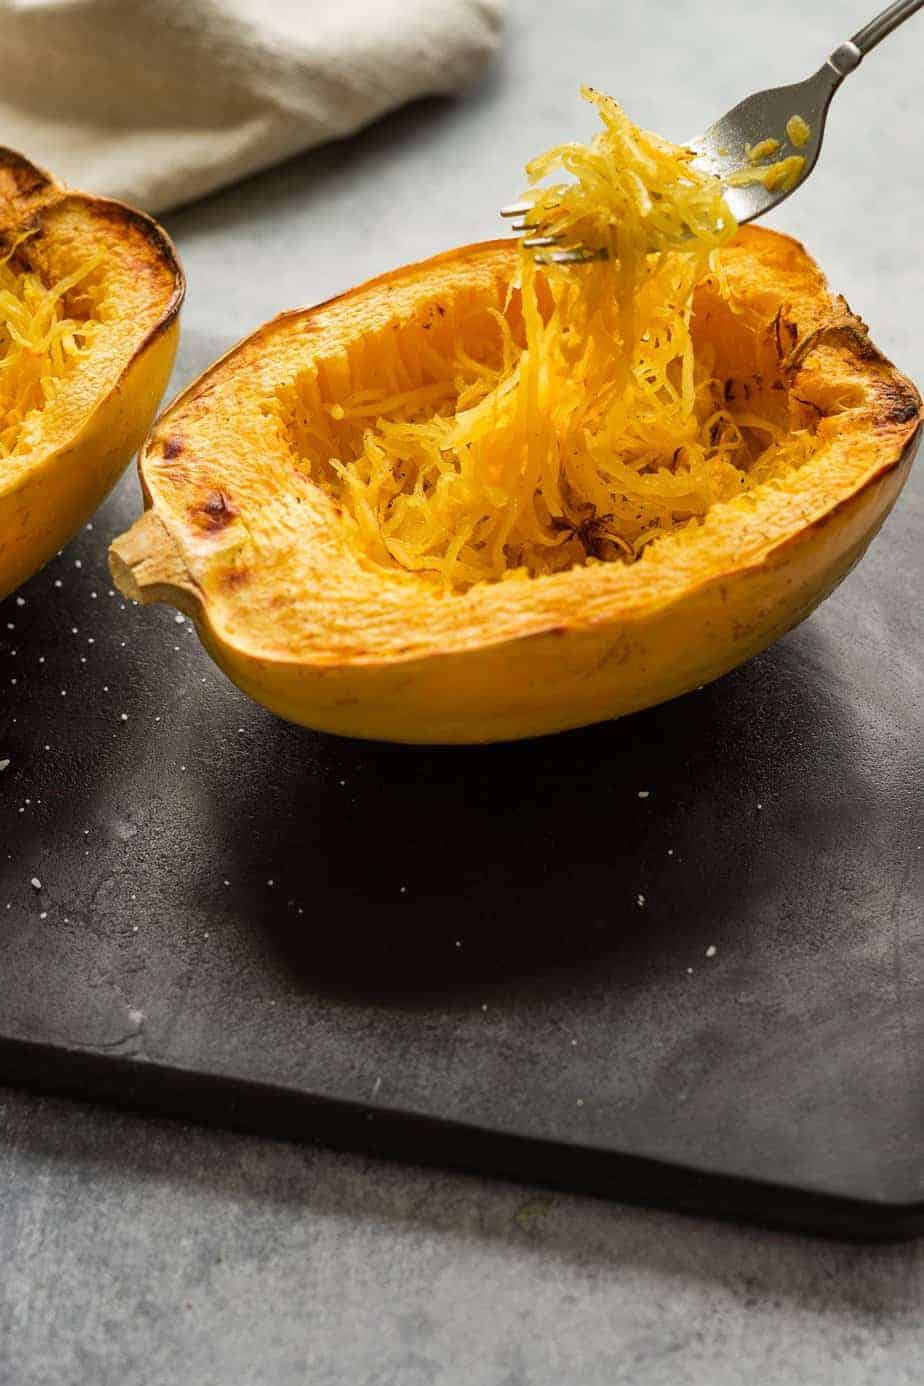 Air fryer Spaghetti squash holding the noodles with a fork.